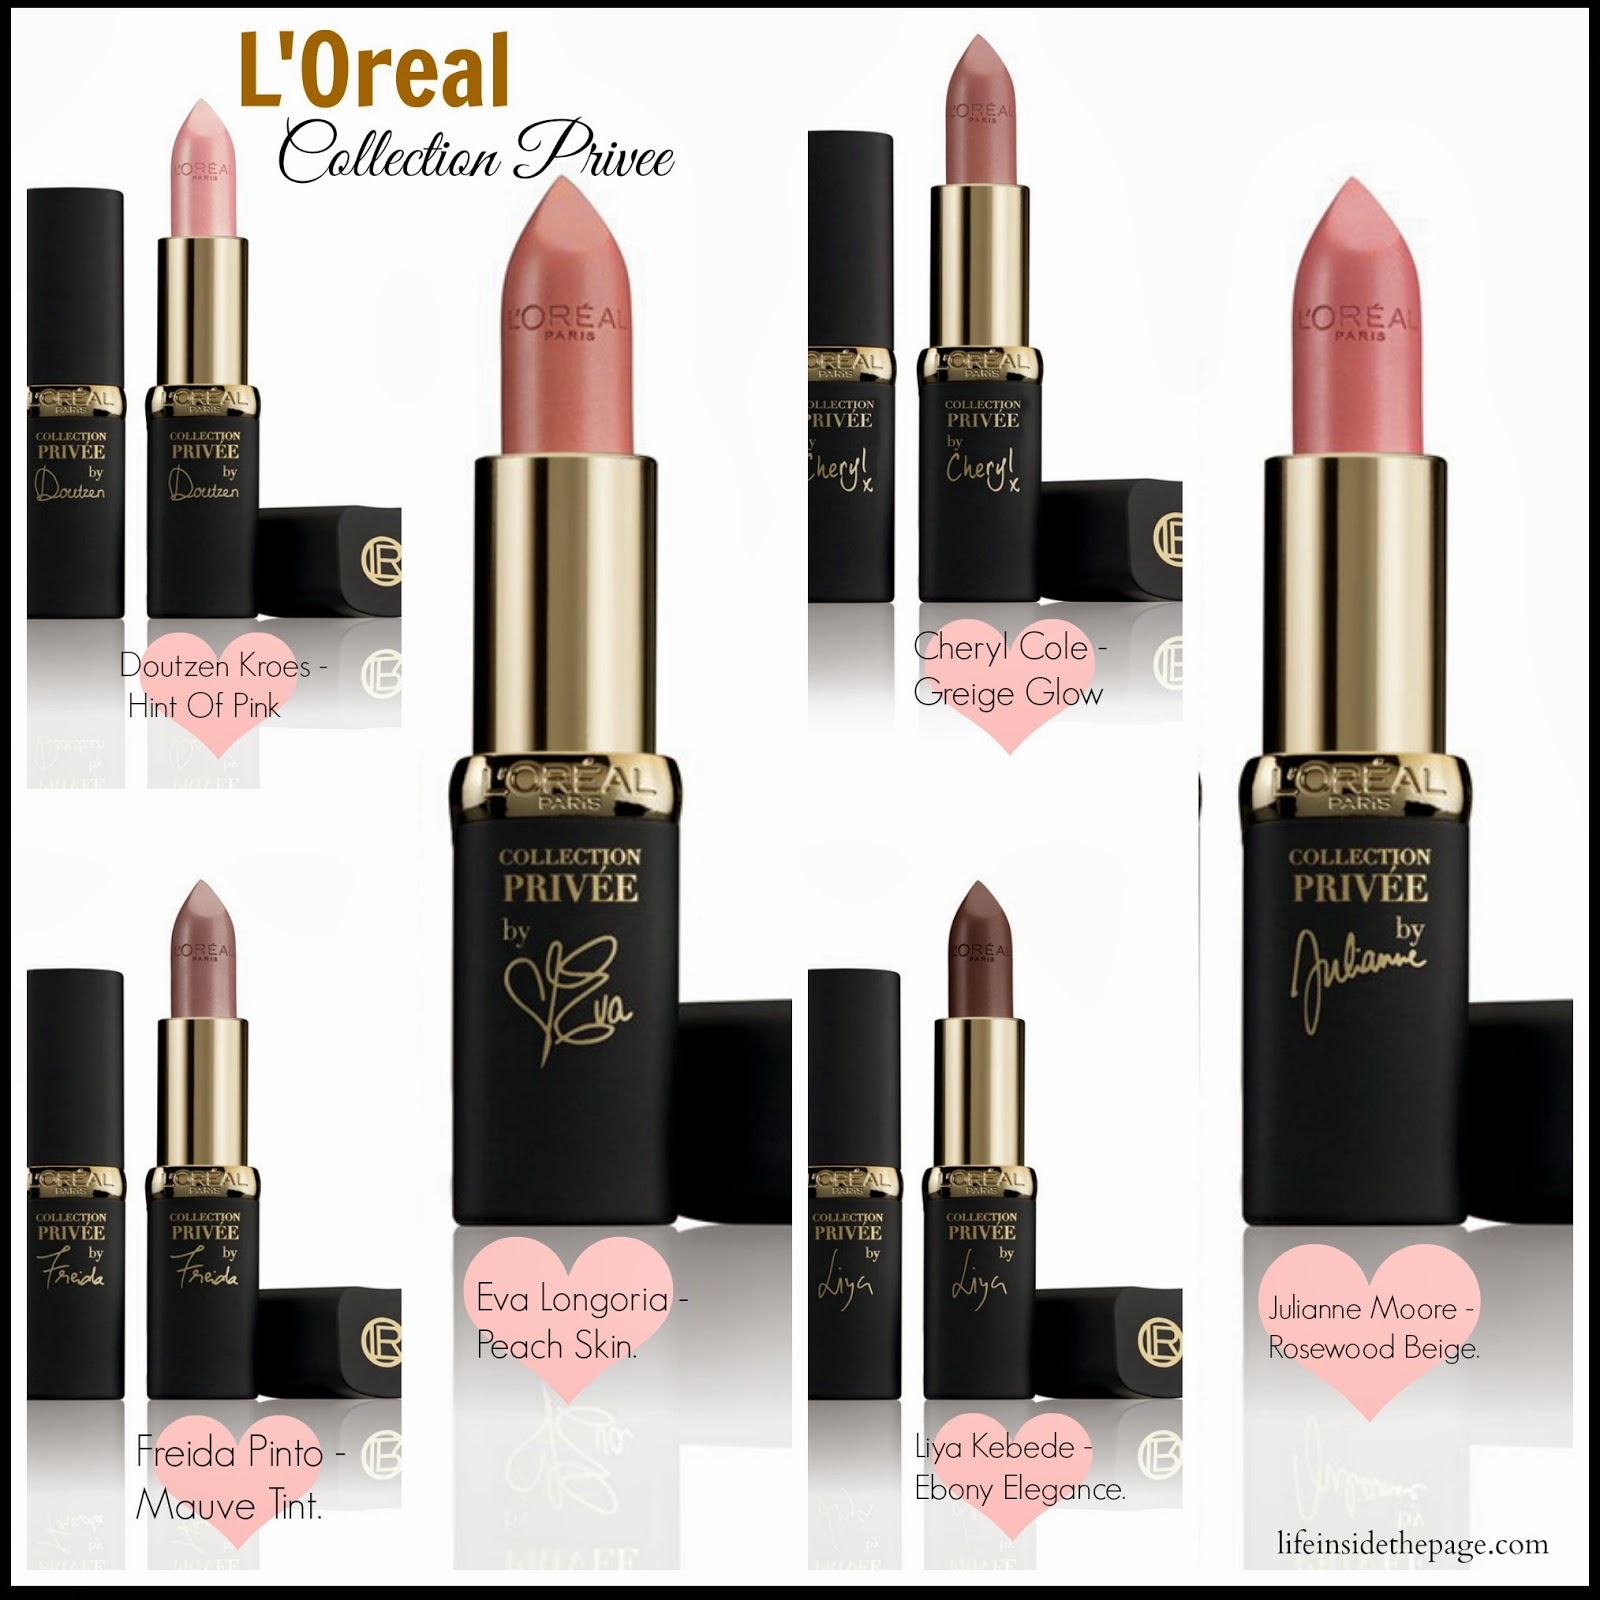 6 Shades of Nude: LOreal Collection Privee Lipstick